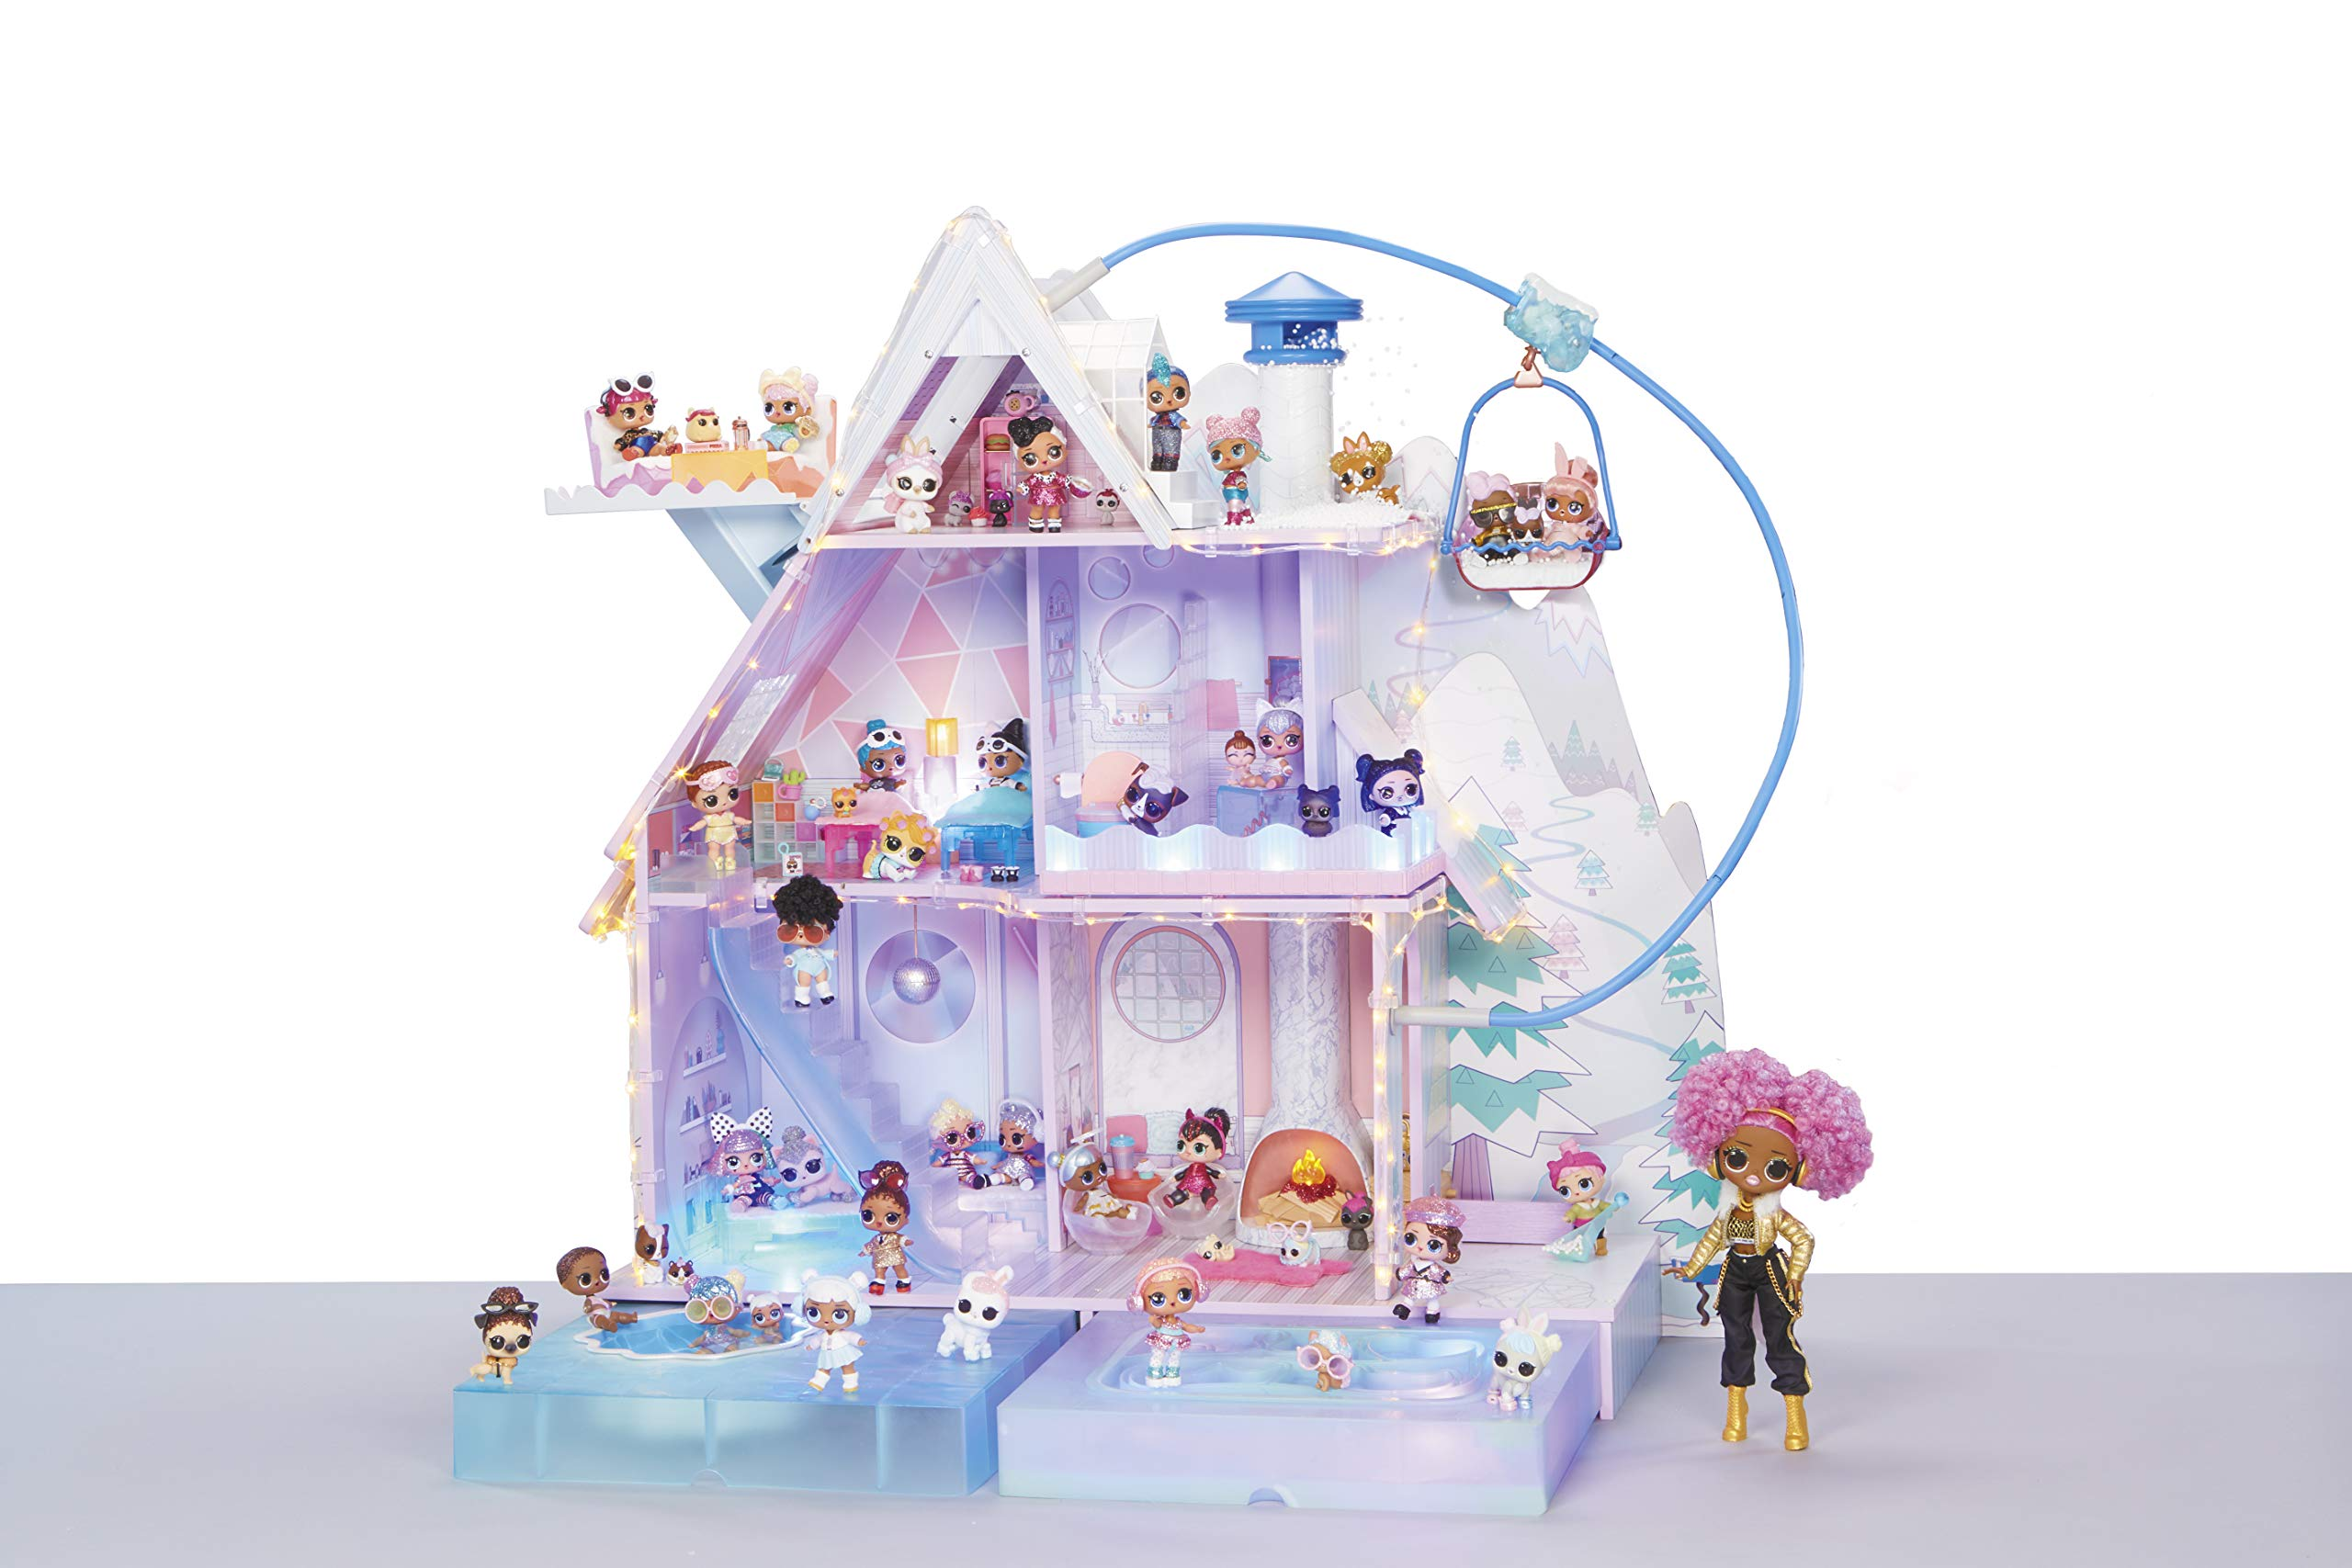 L.O.L 서프라이즈 '윈터 디스코' 인형의 집 LOL Surprise L.O.L. Surprise! Winter Disco Chalet Doll House with 95+ Surprises & Exclusive Family,Standard Packaging